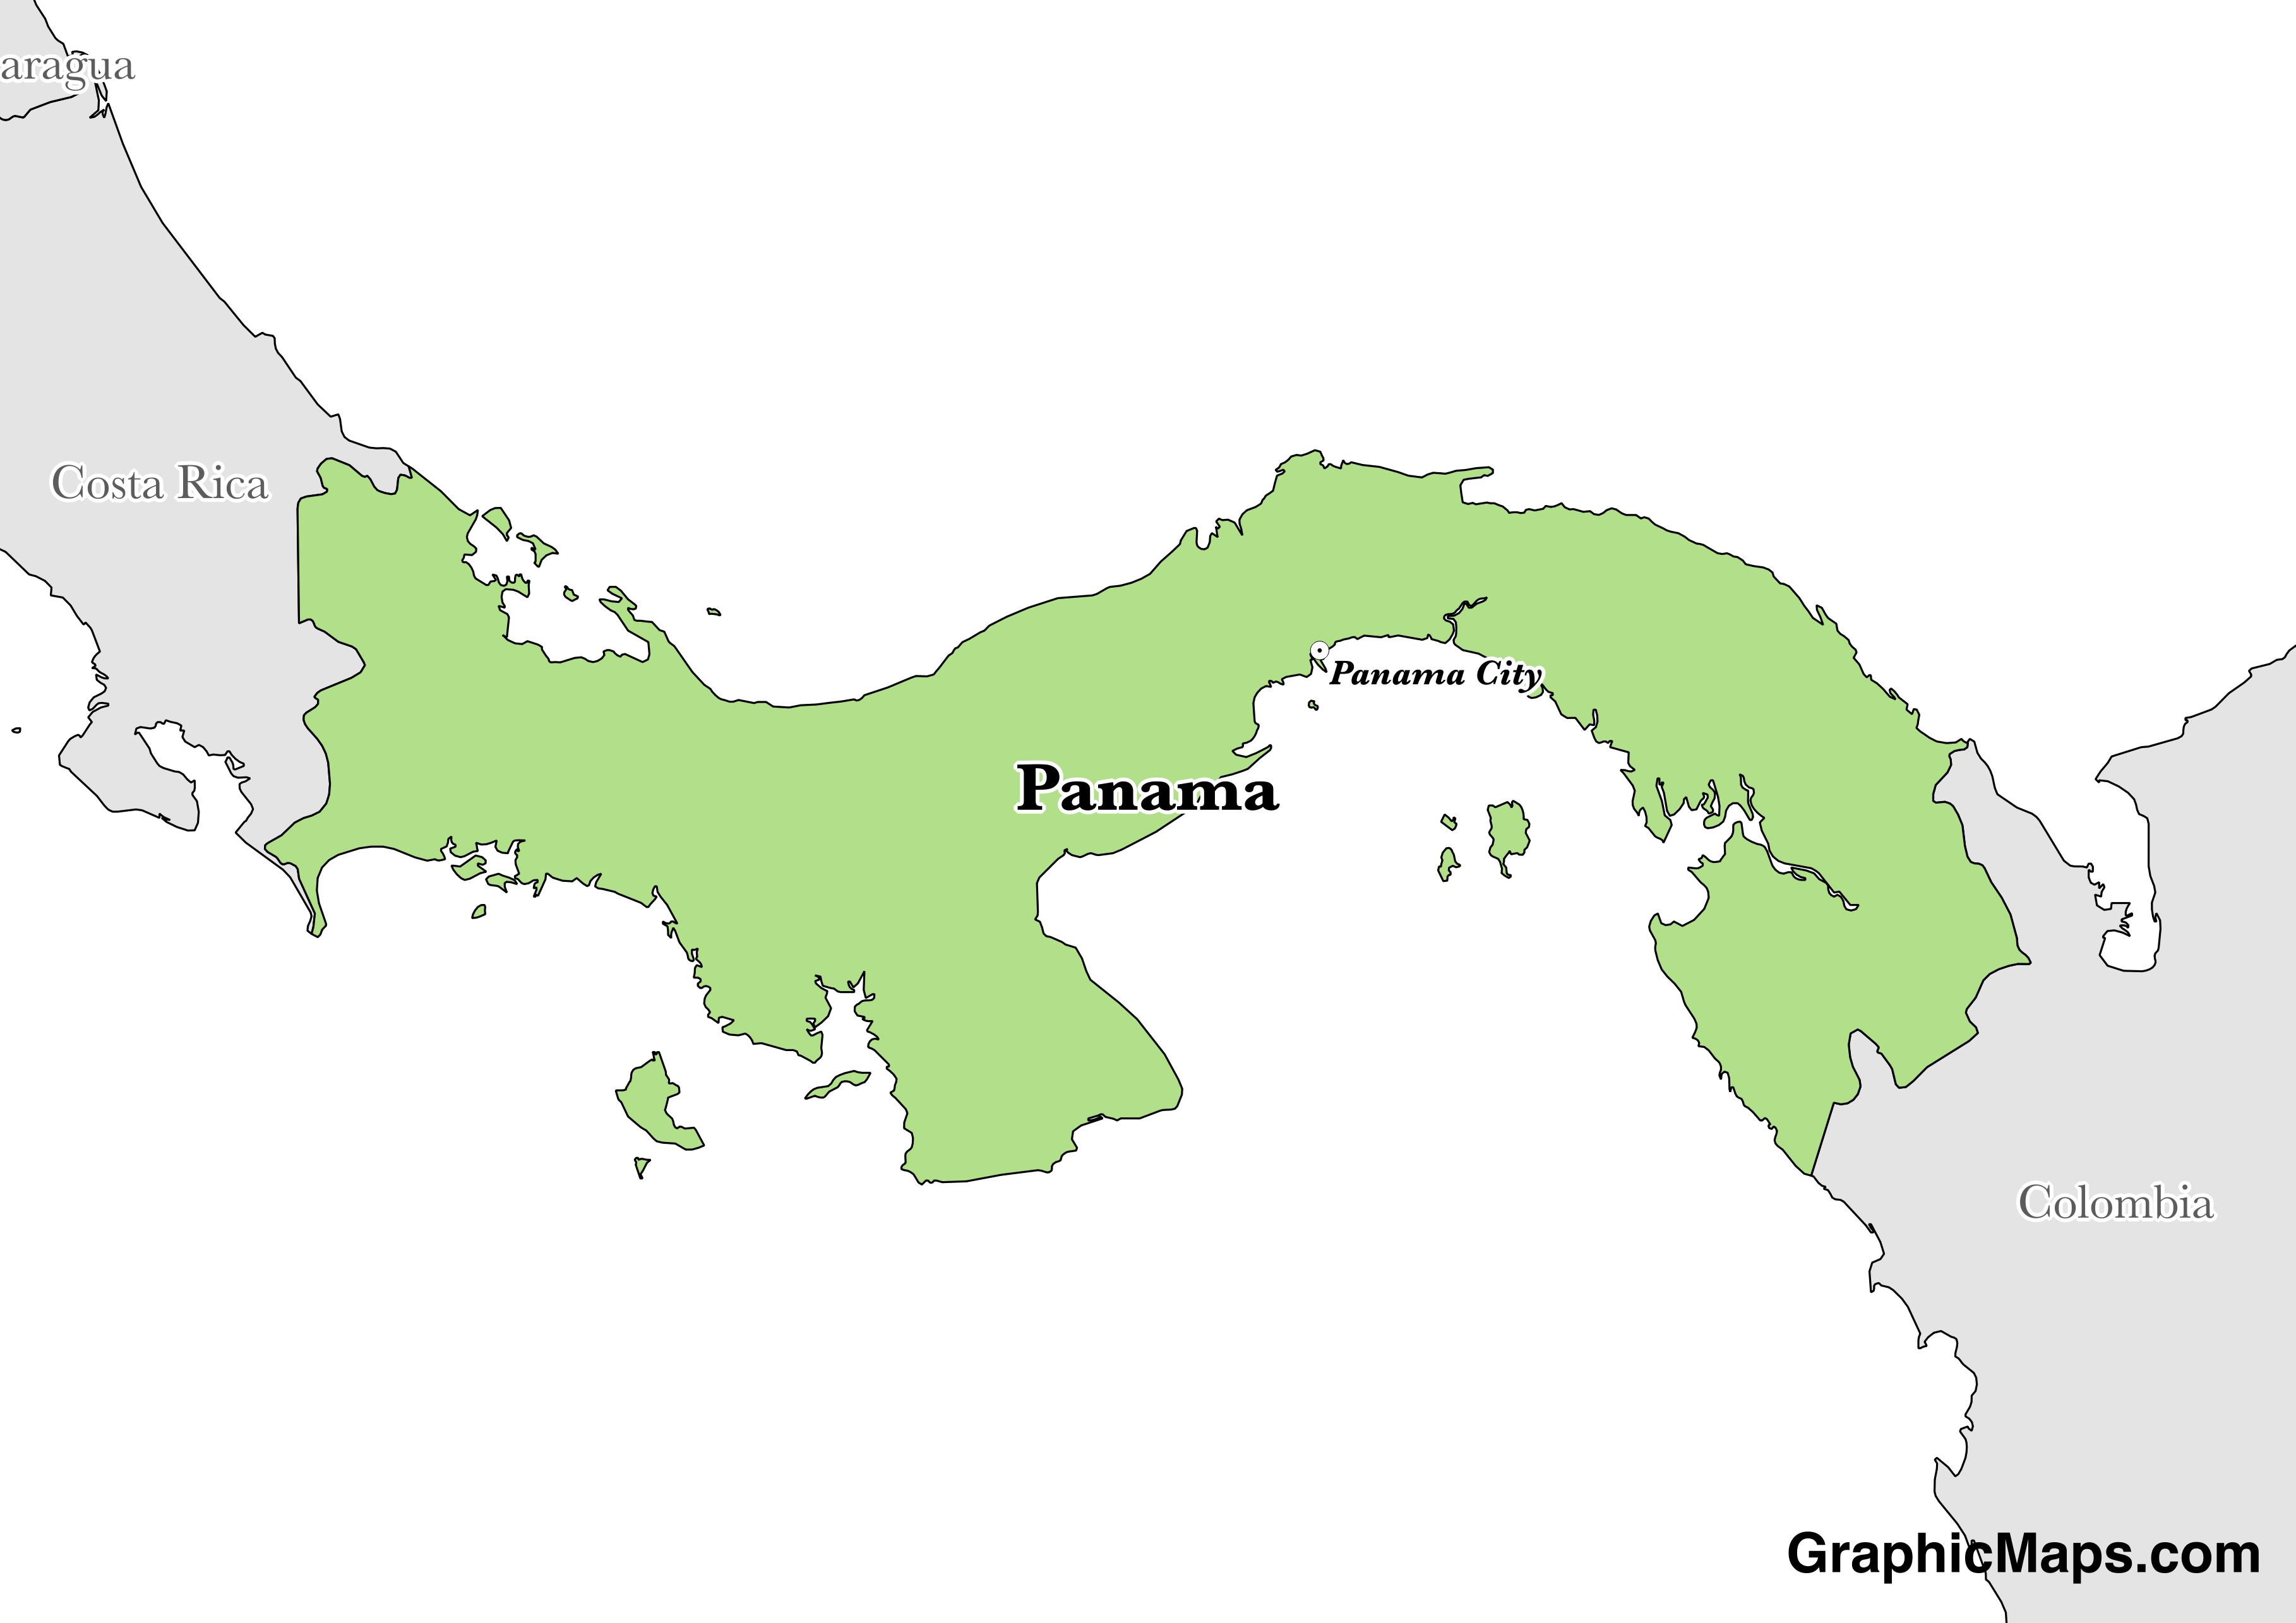 Map showing the location of Panama